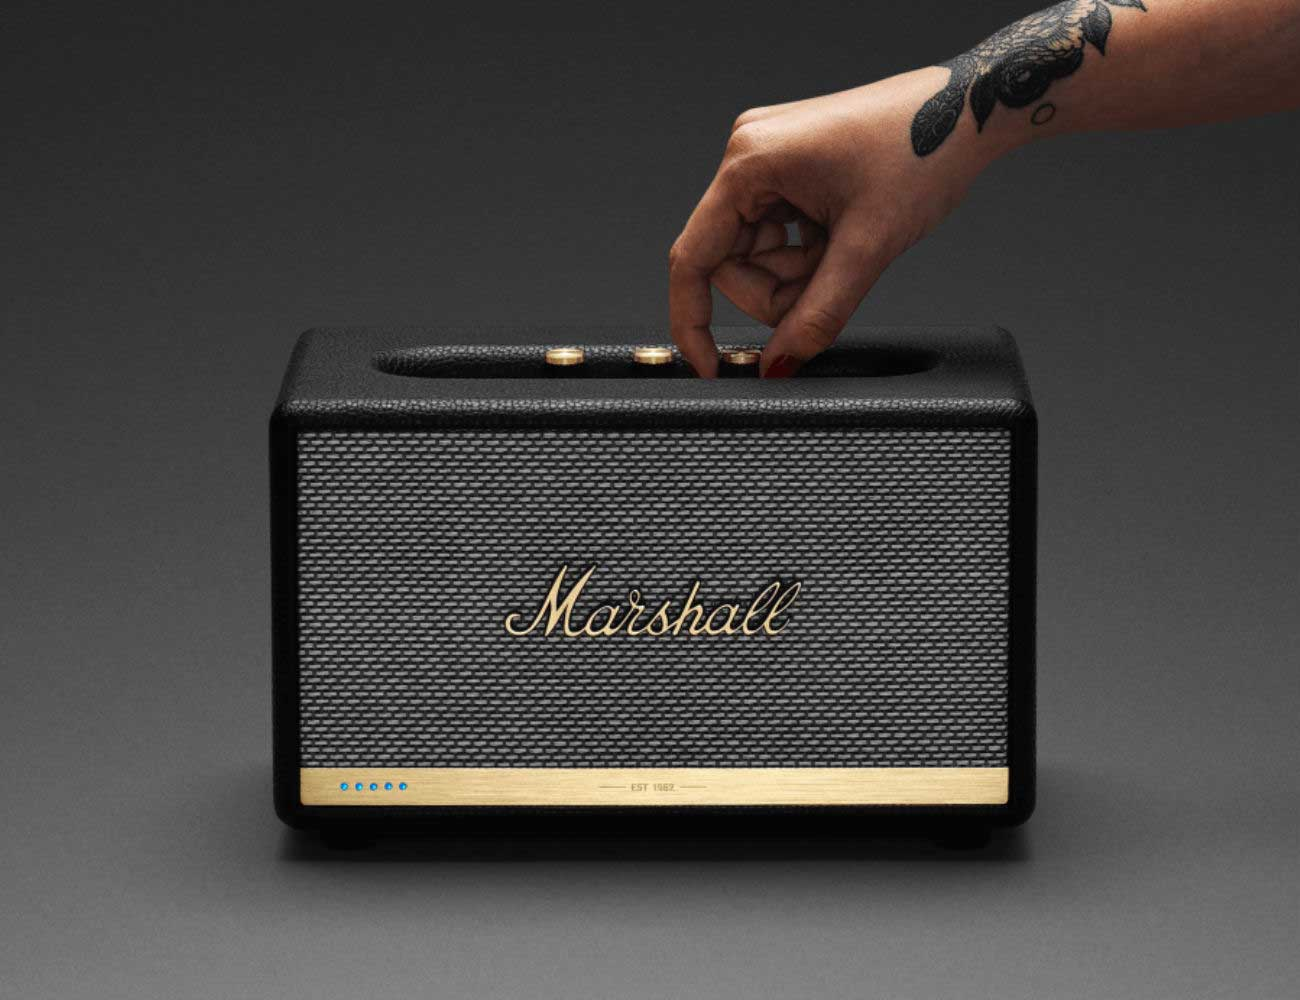 MArshall Acton controles